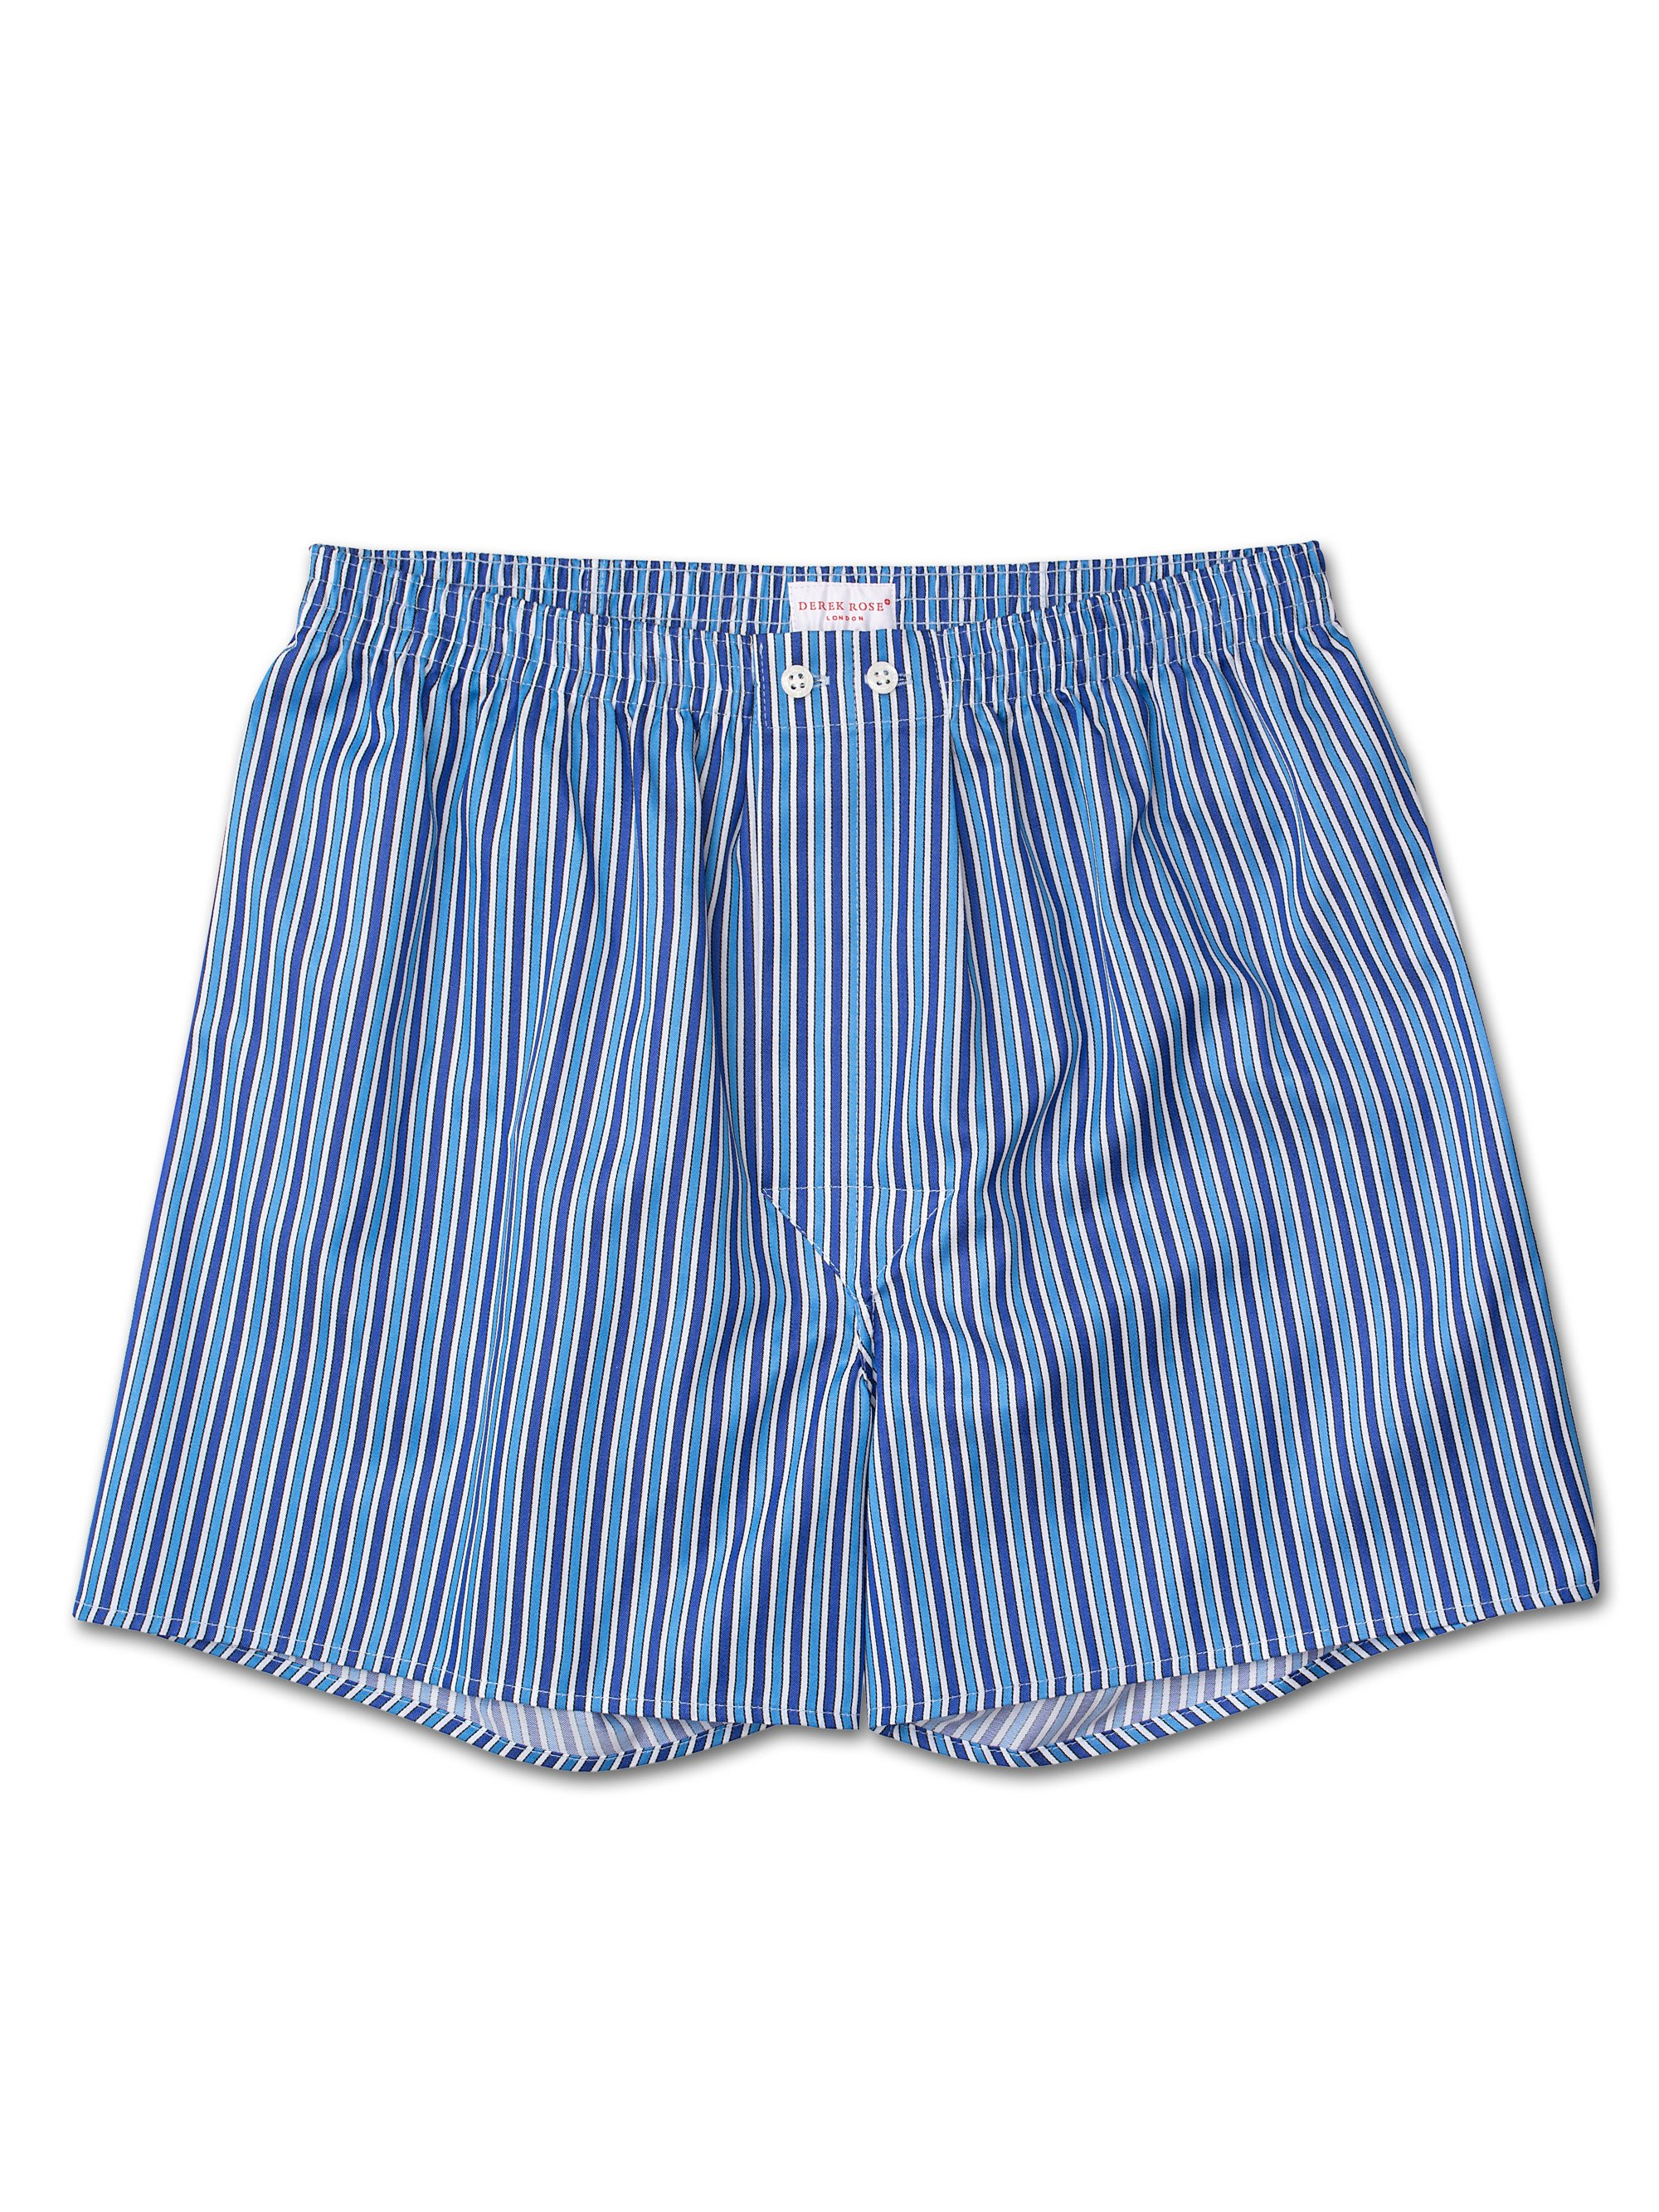 Men's Classic Fit Boxer Shorts Royal 197 Cotton Satin Stripe Blue